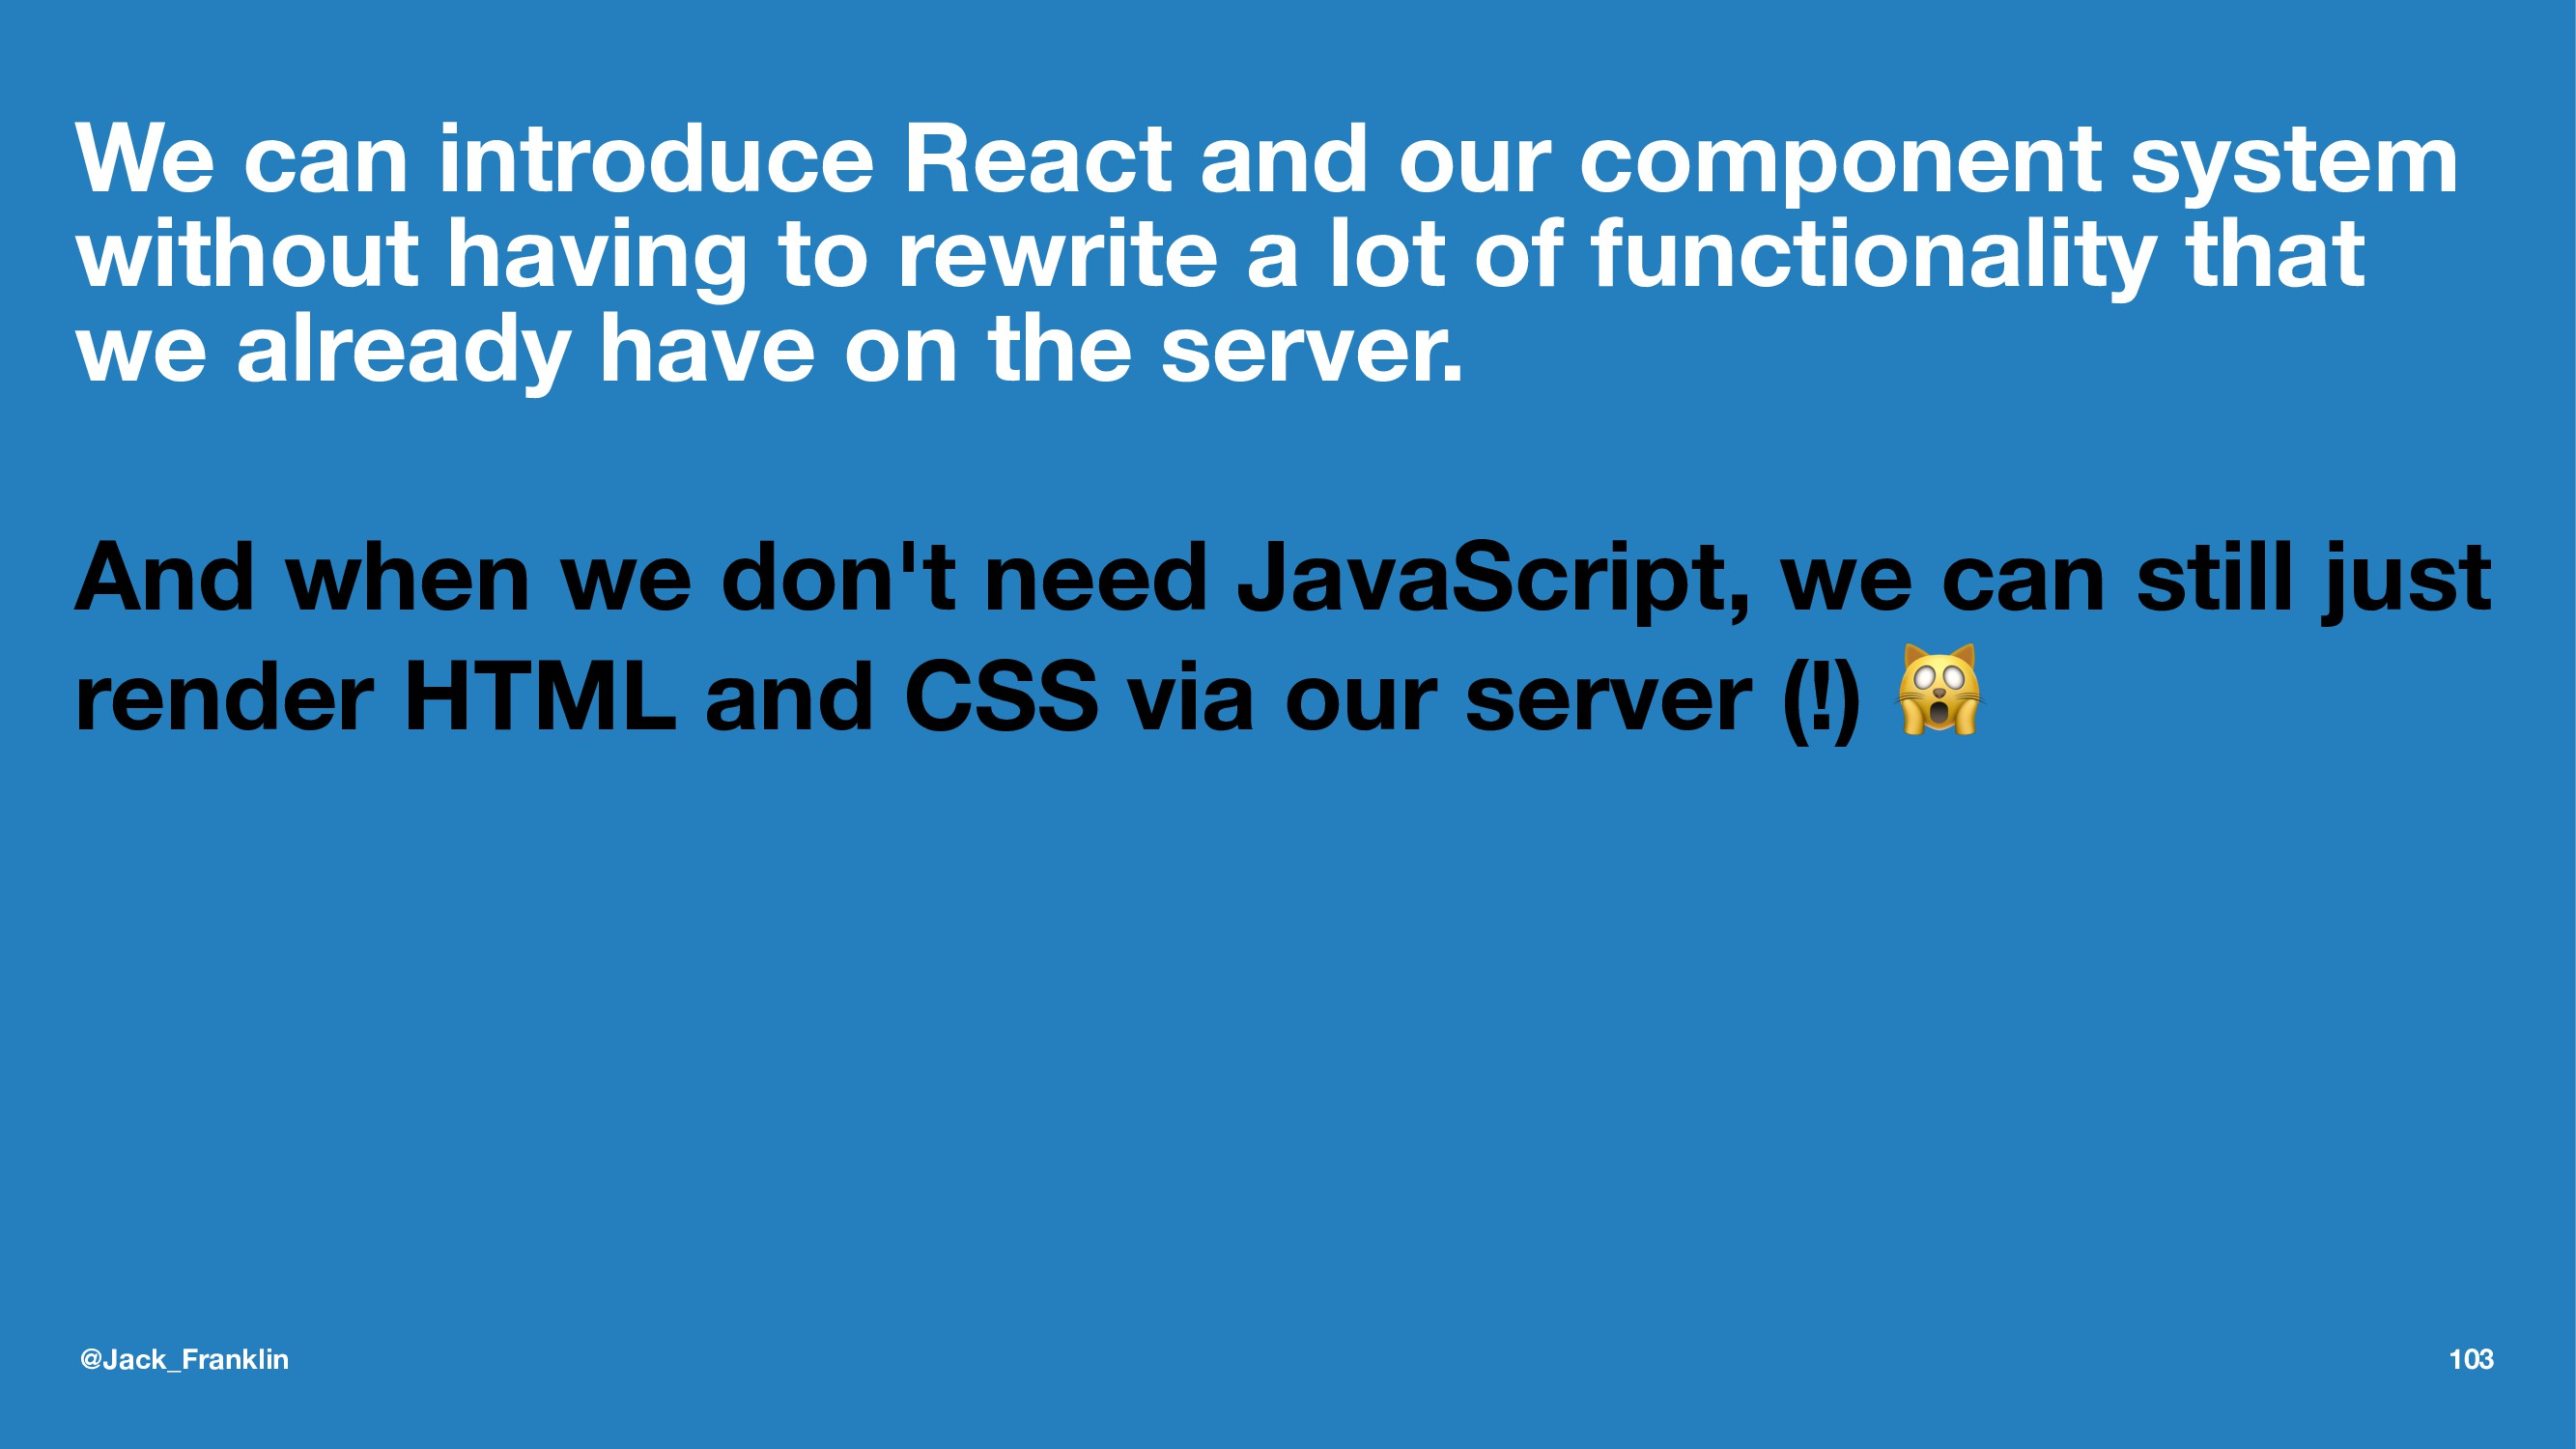 We can introduce React and our component system...